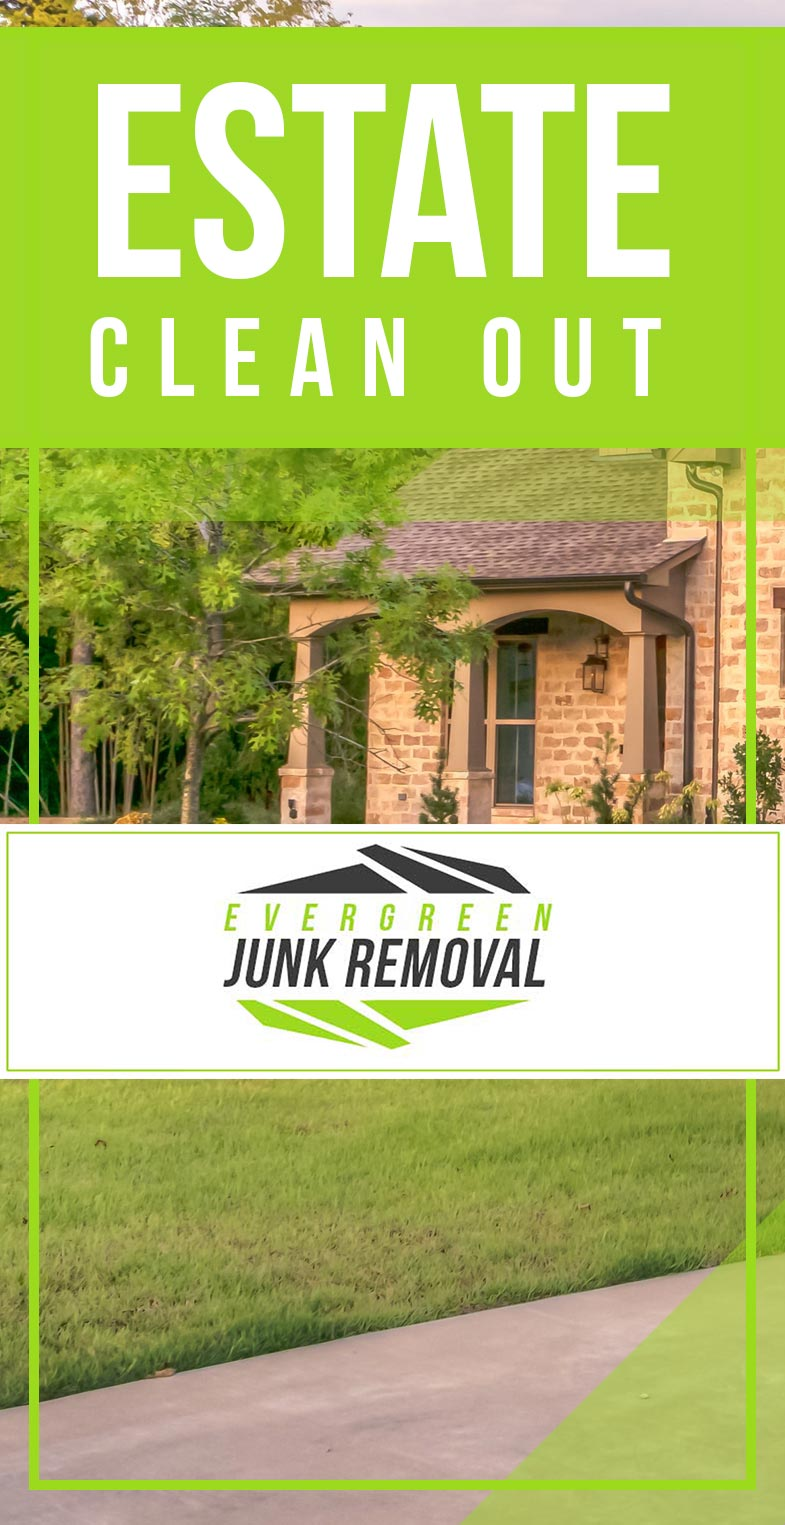 Junk Removal Royal Palm Beach Estate Clean Out